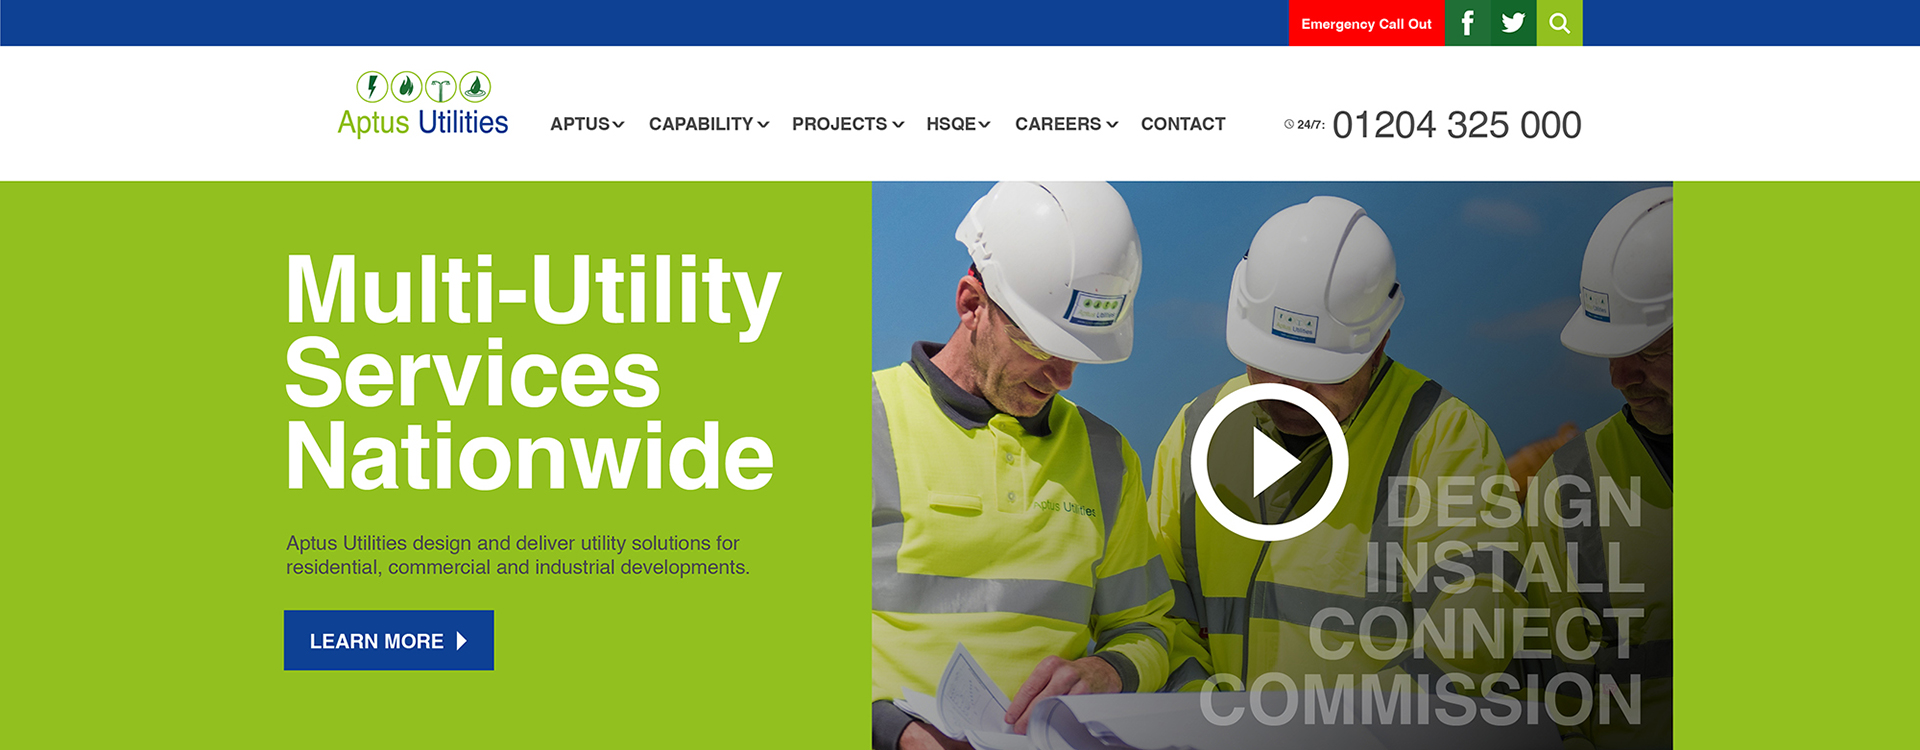 Marketing audit for Aptus Utilities after MBO image